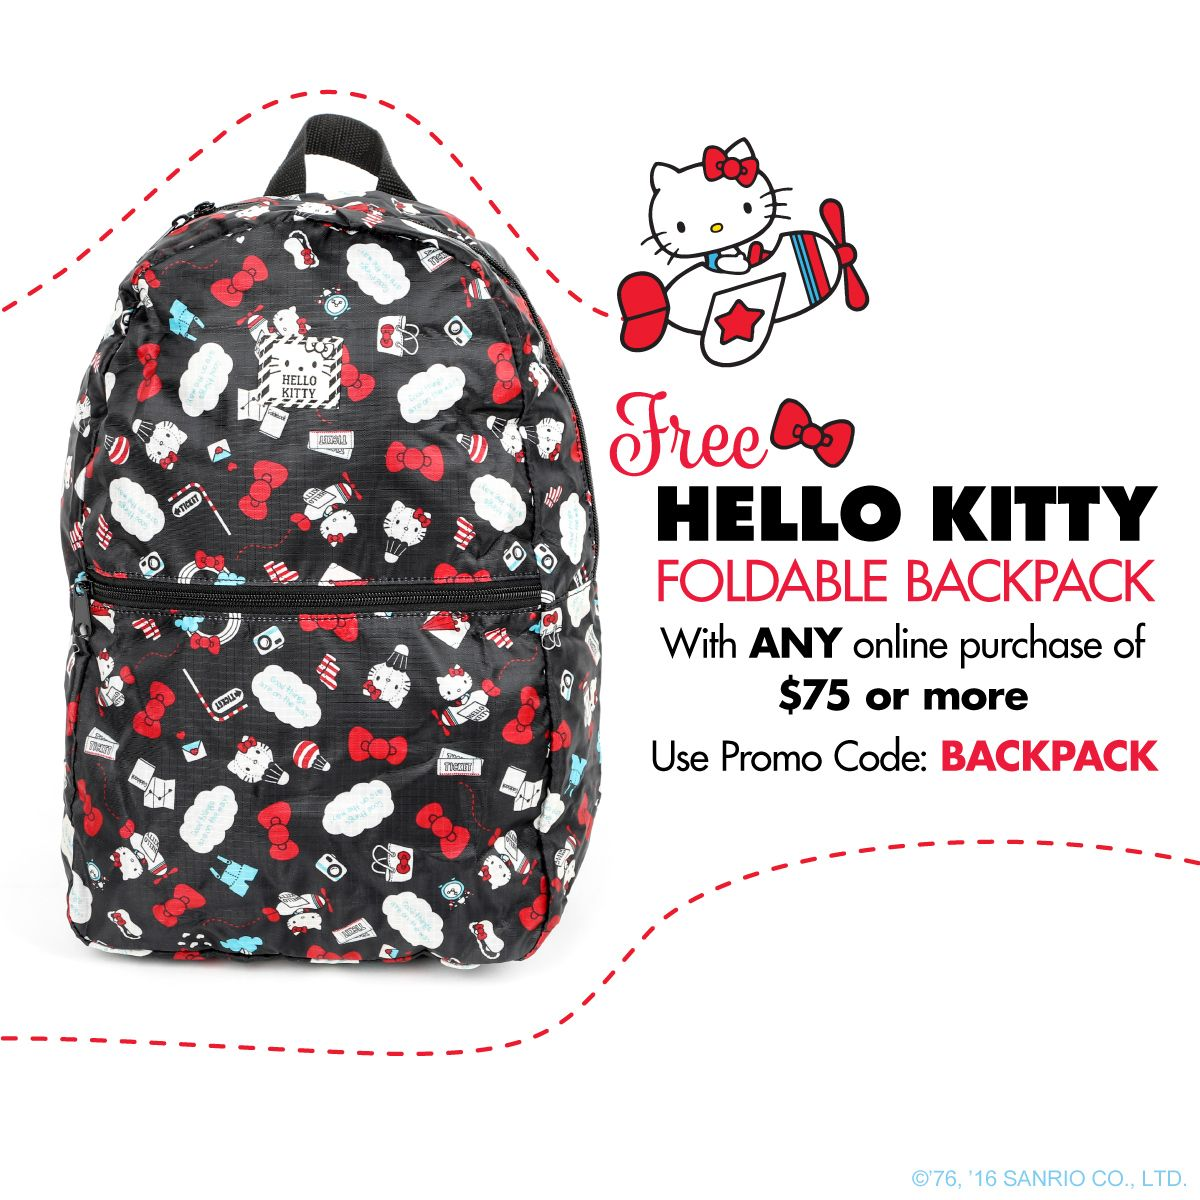 Get a free Hello Kitty Foldable Backpack with any online purchase of  75 or  more. e7efab7960c59